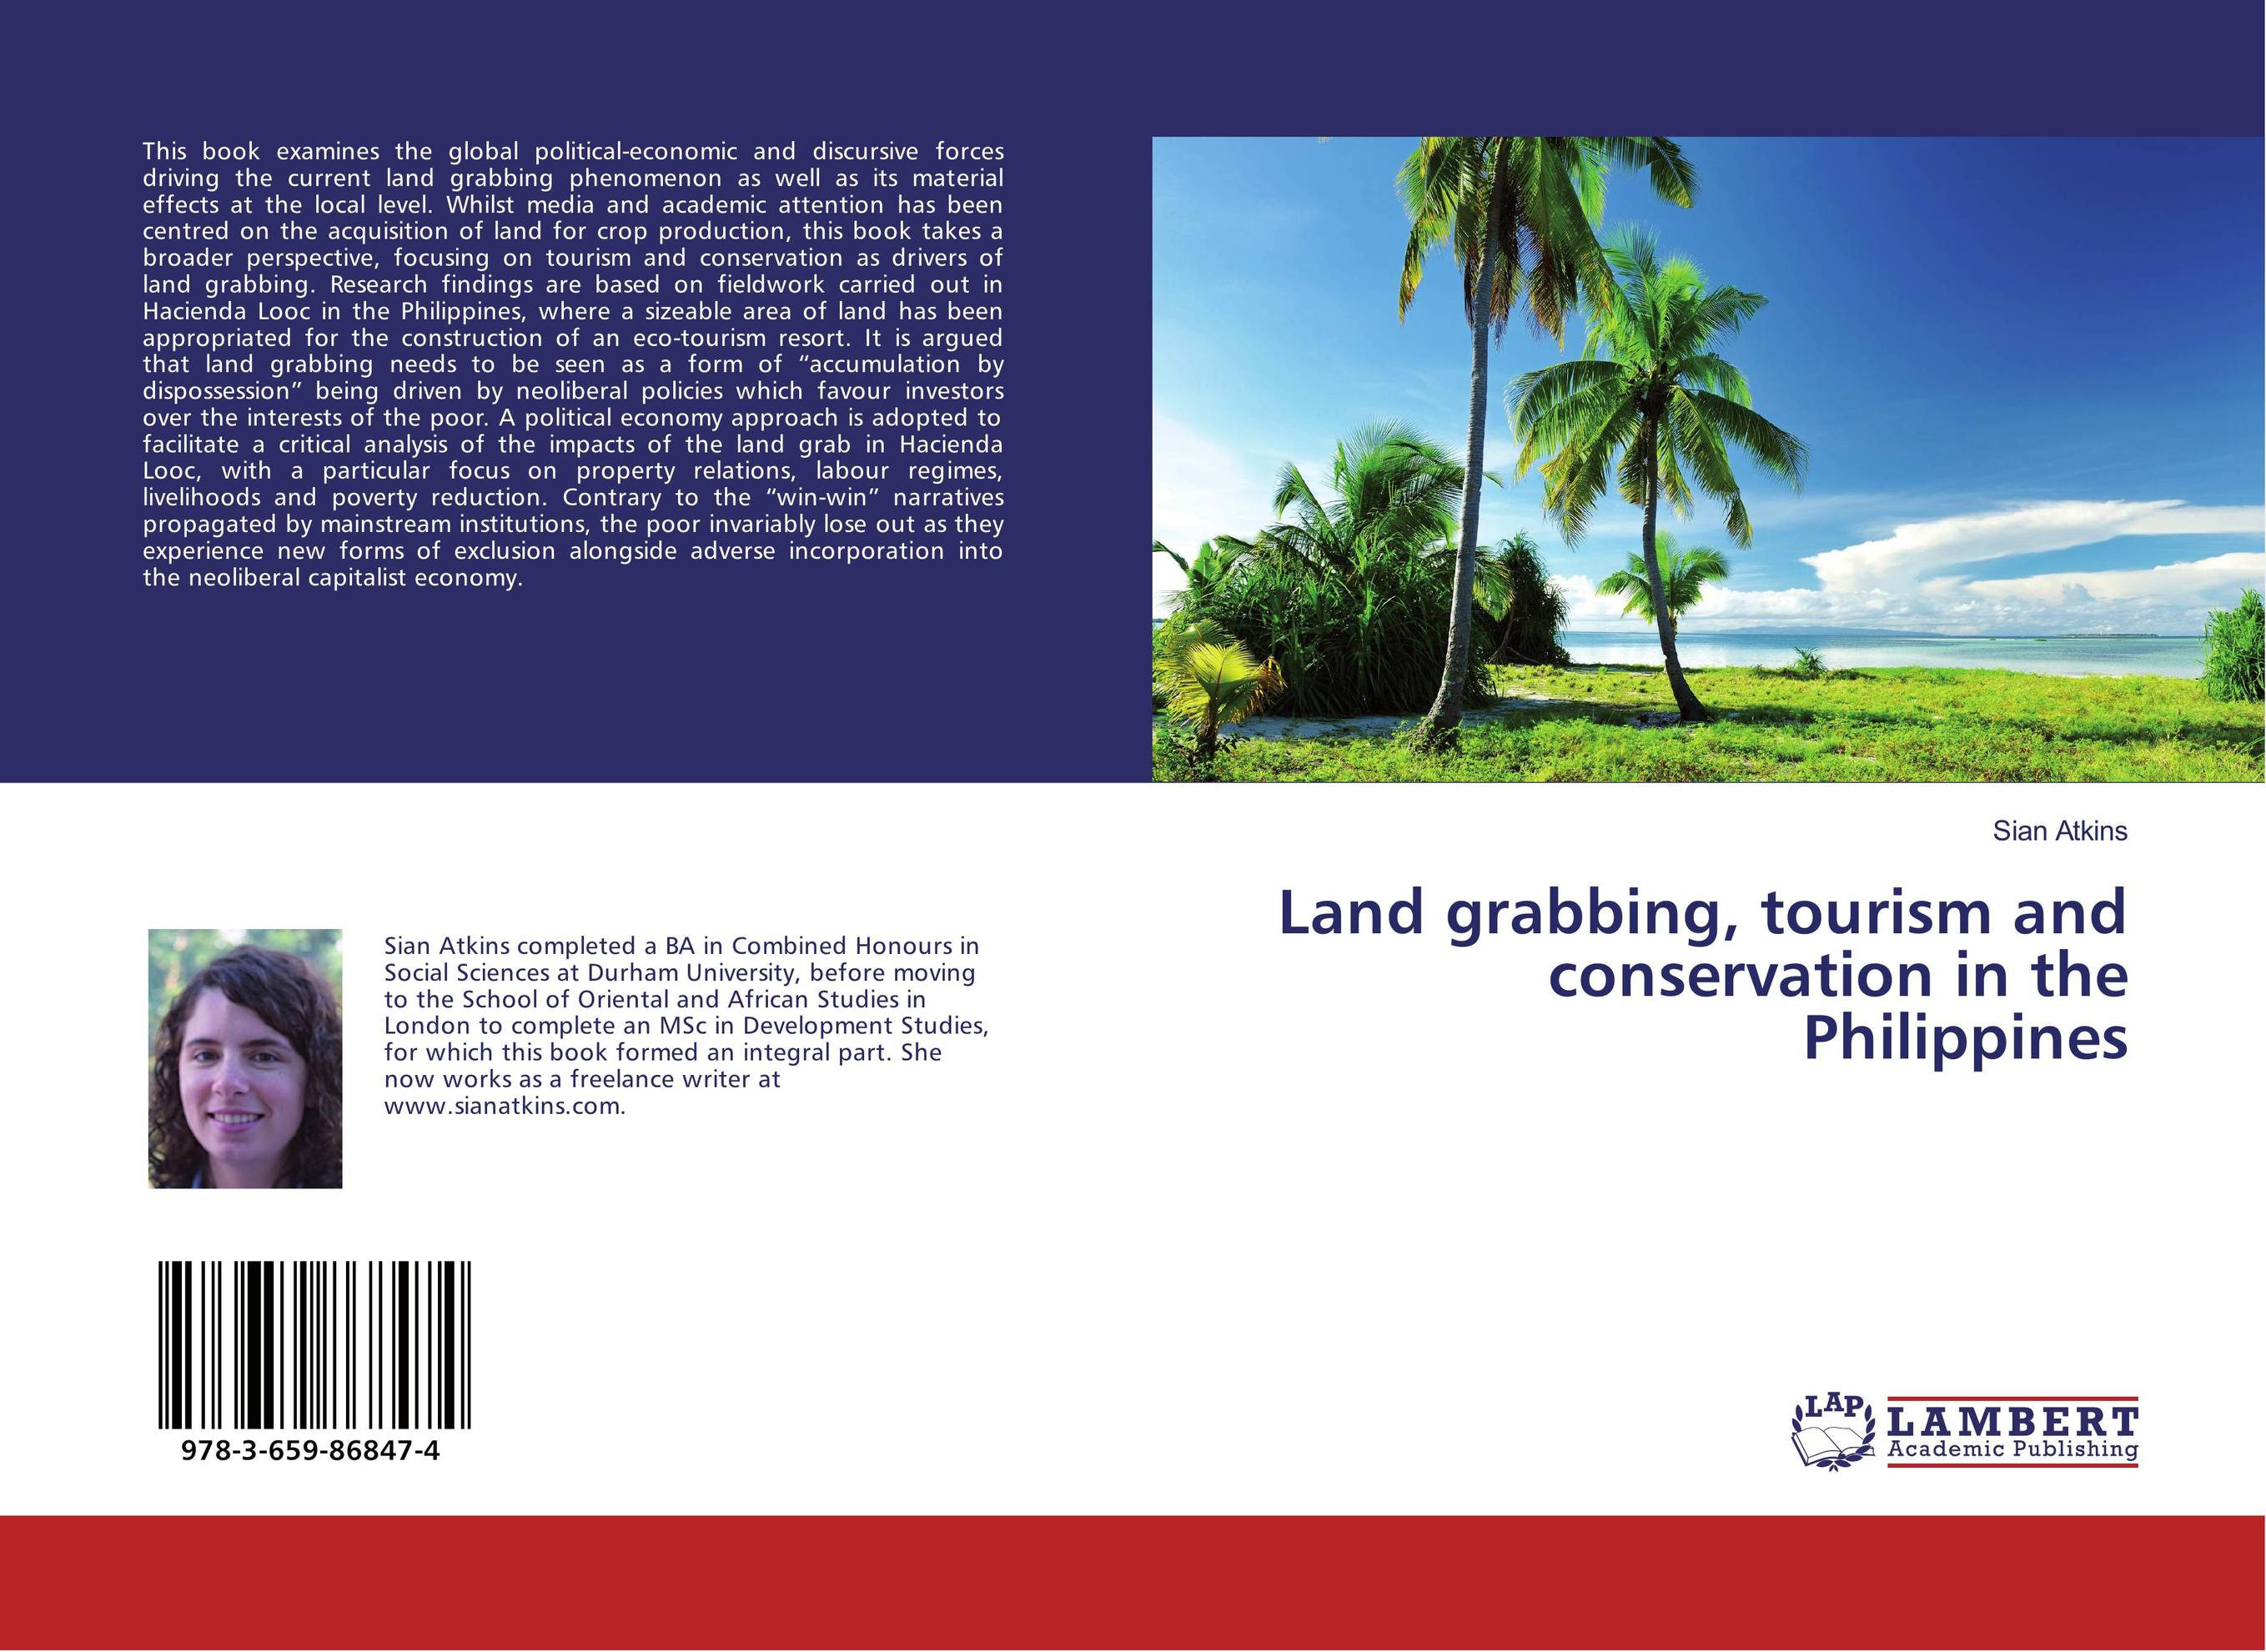 Land grabbing, tourism and conservation in the Philippines